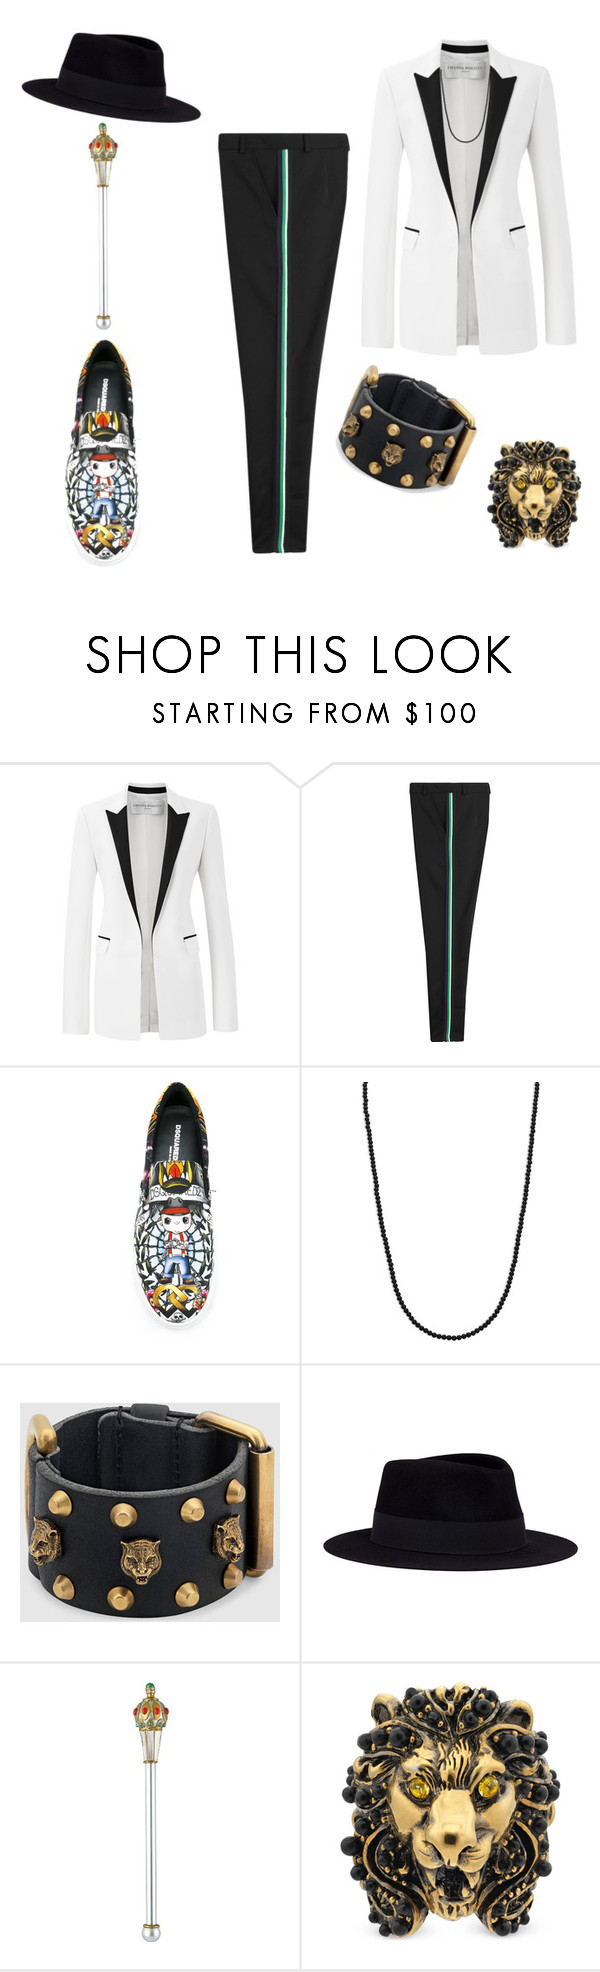 """King Me #420"" by missactive-xtraordinary ❤ liked on Polyvore featuring Amanda Wakeley, McQ by Alexander McQueen, Dsquared2, King Baby Studio, Gucci, Maison Michel, men's fashion and menswear"